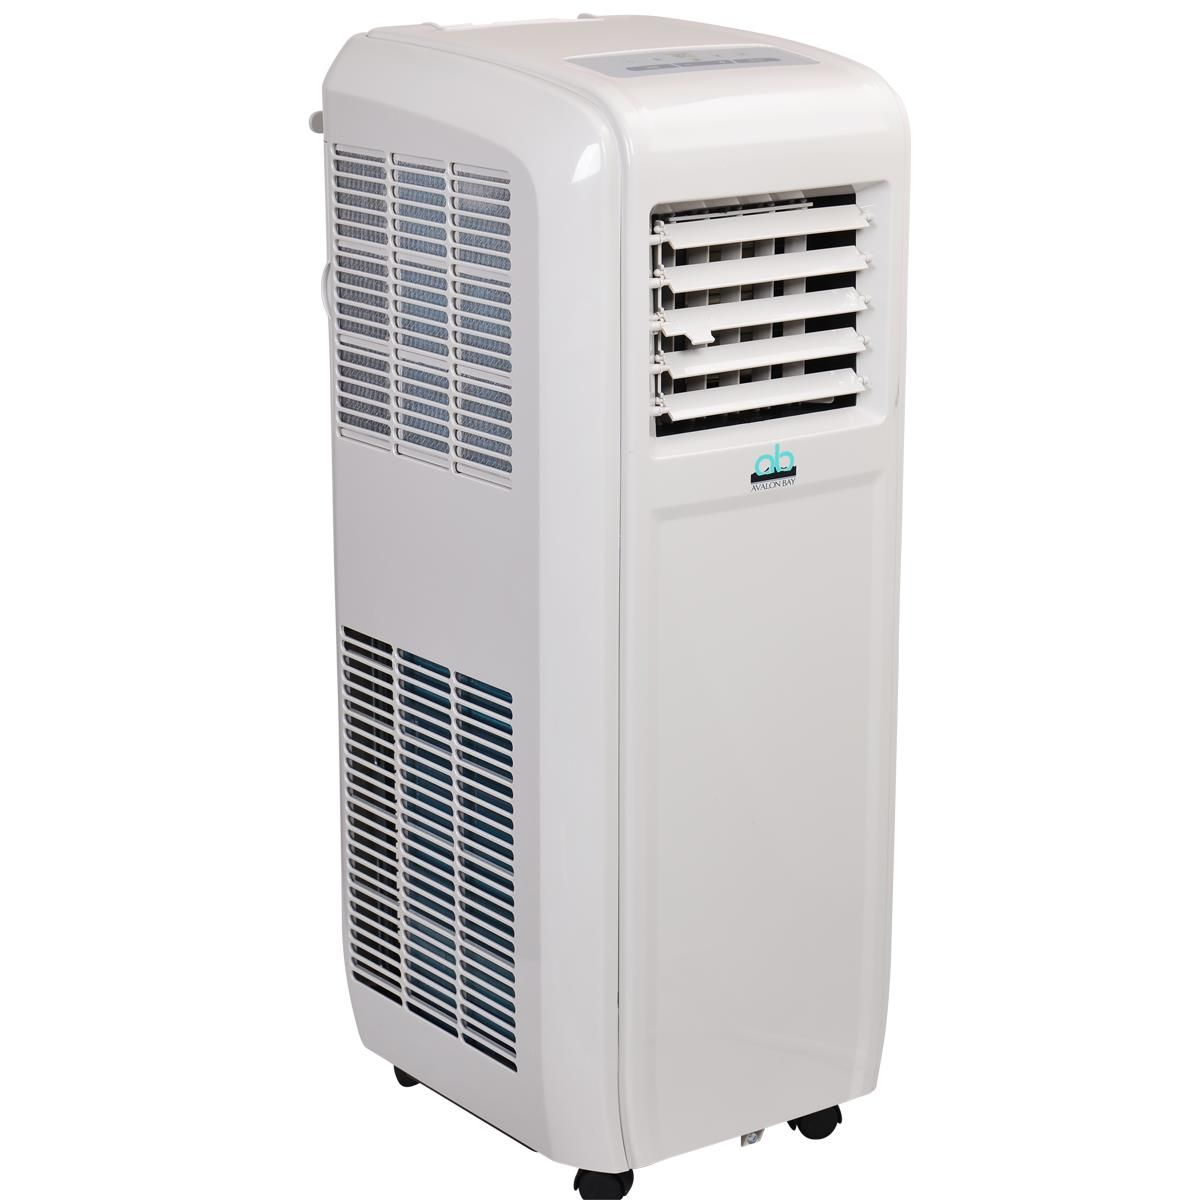 avalon bay ab8k btu portable air conditioner is ecofriendly and operates as - Air Conditioner Portable